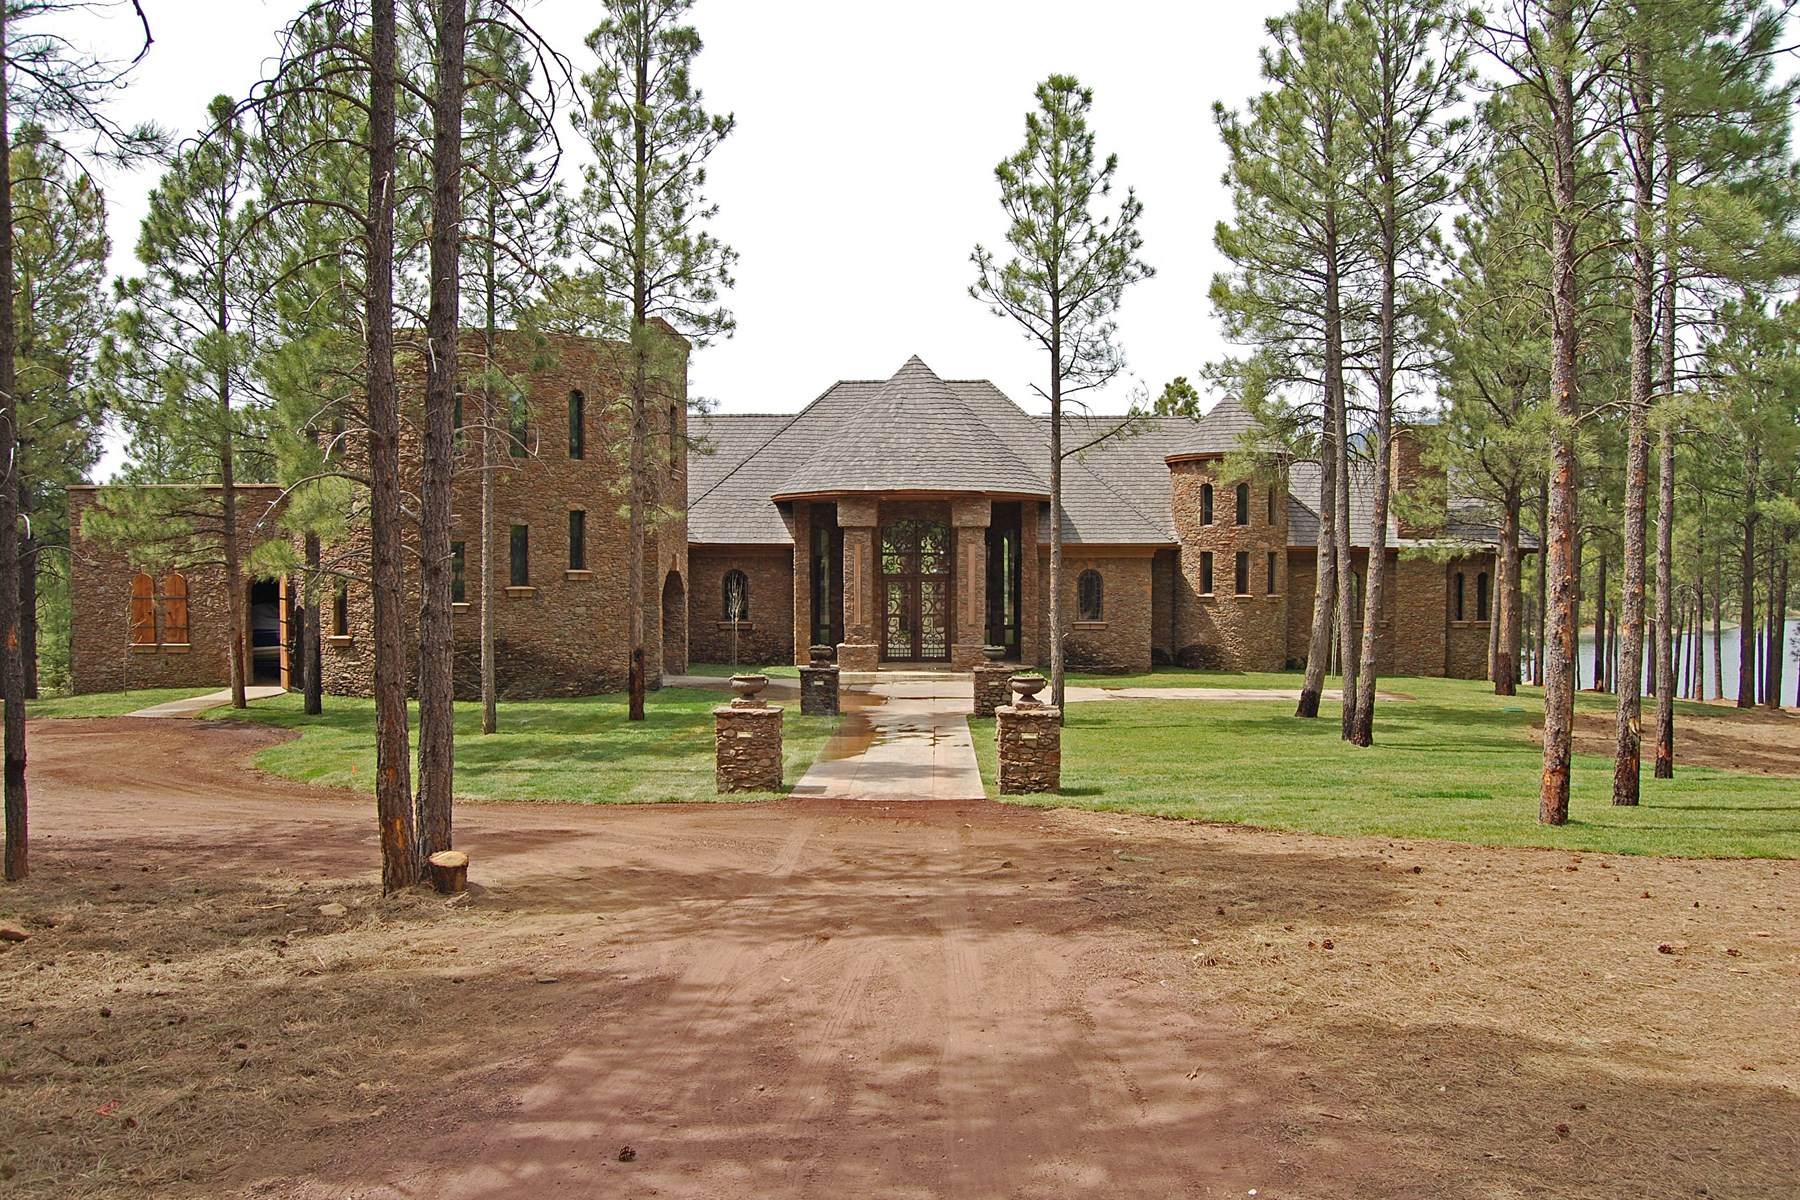 Single Family Home for Sale at Beautifully appointed Lakeside living 401 N Sky View St Flagstaff, Arizona, 86004 United States